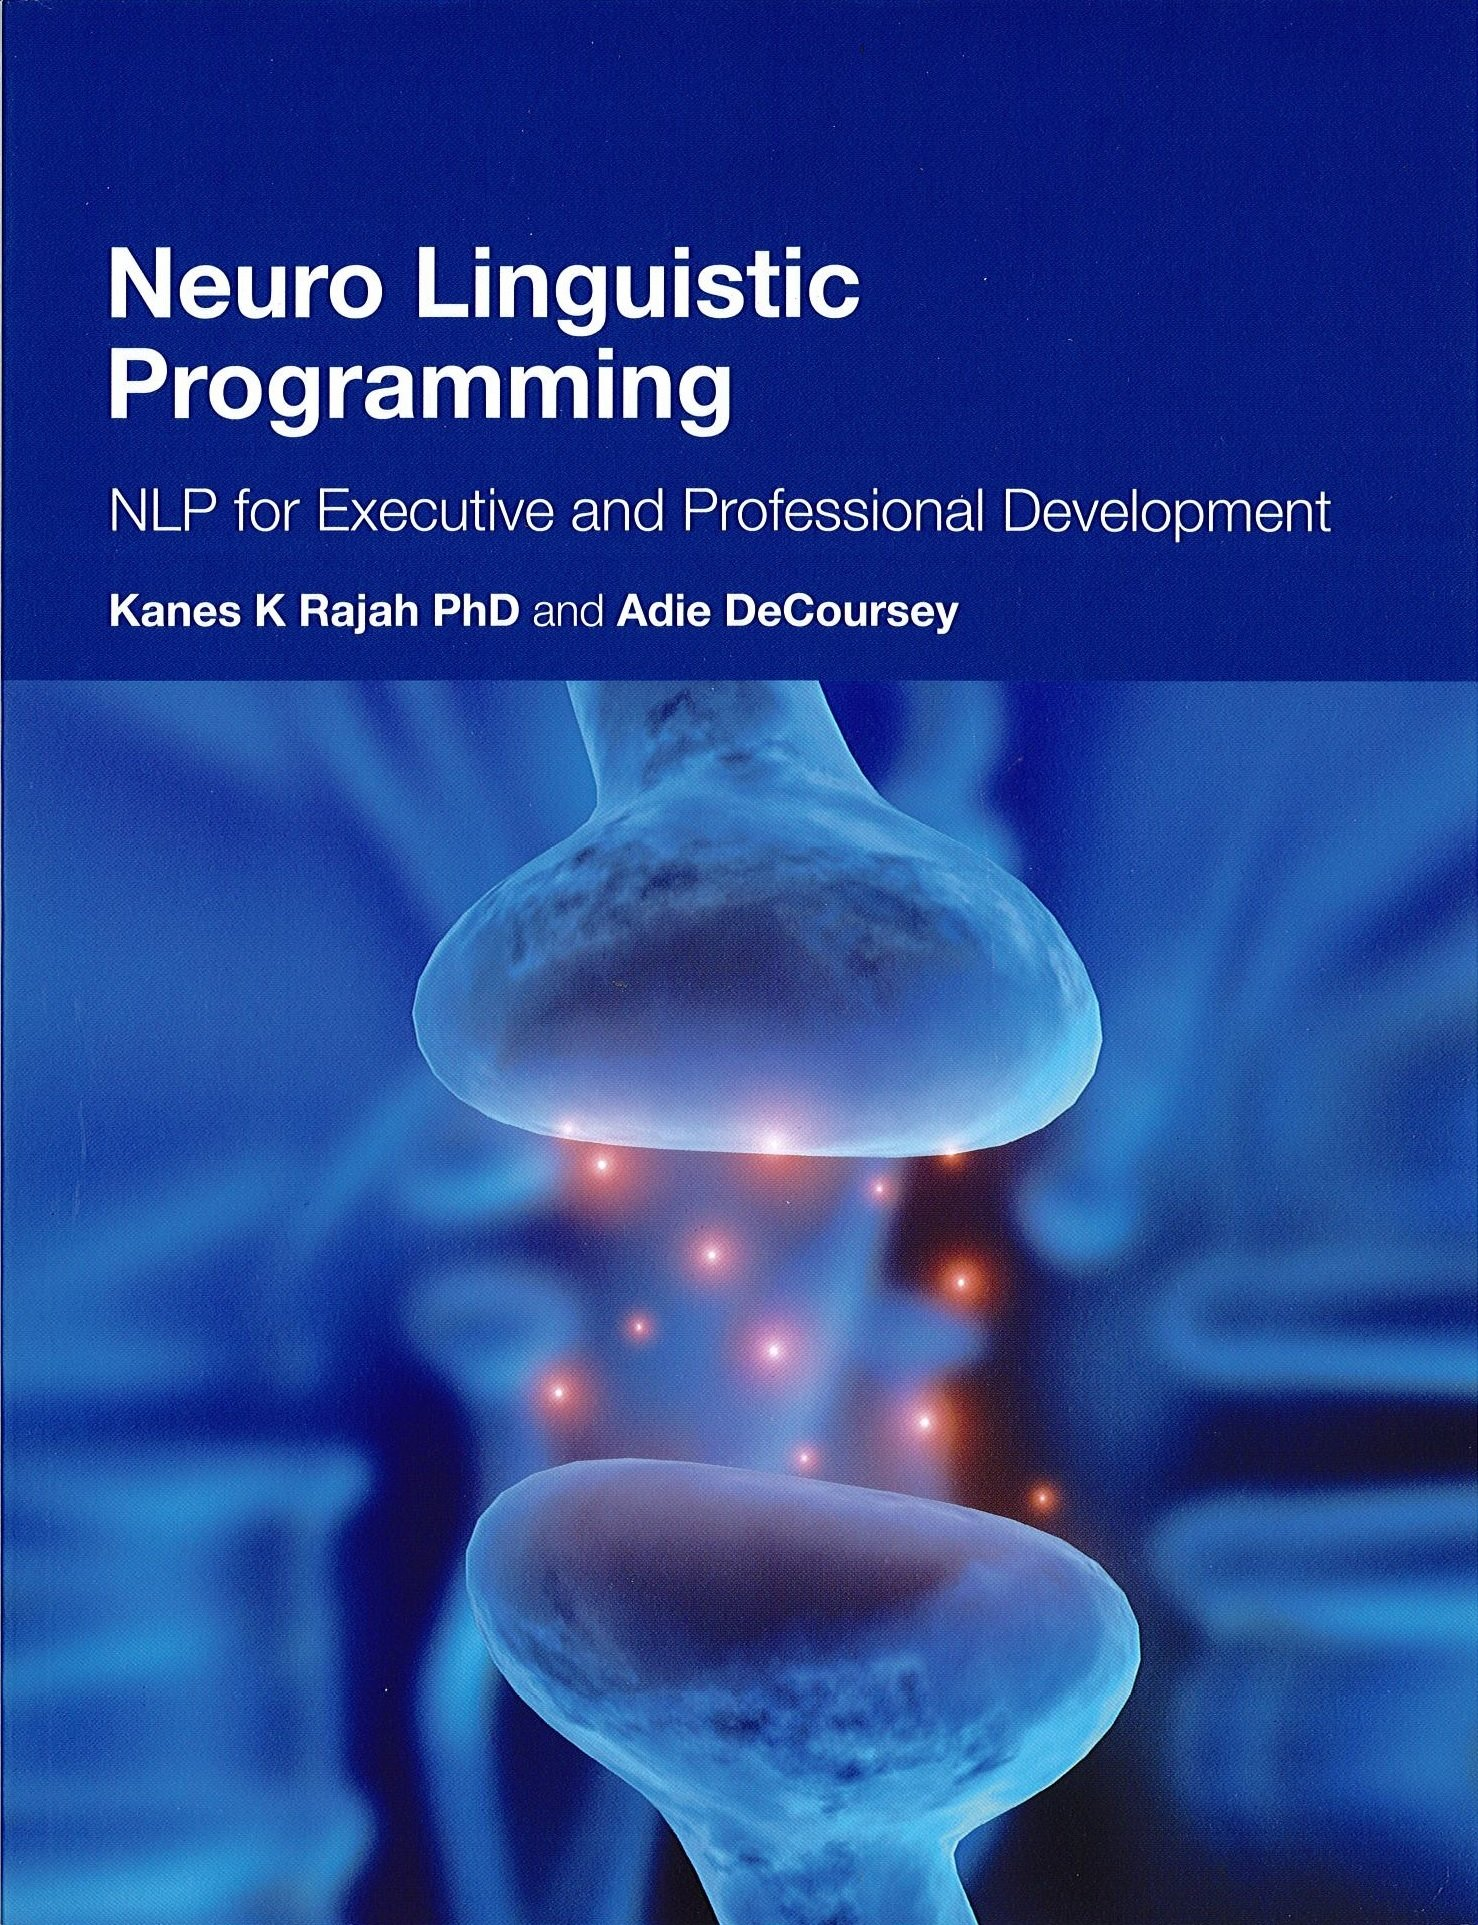 Image OfNeuro Linguistic Programming: NLP For Executive And Professional Development